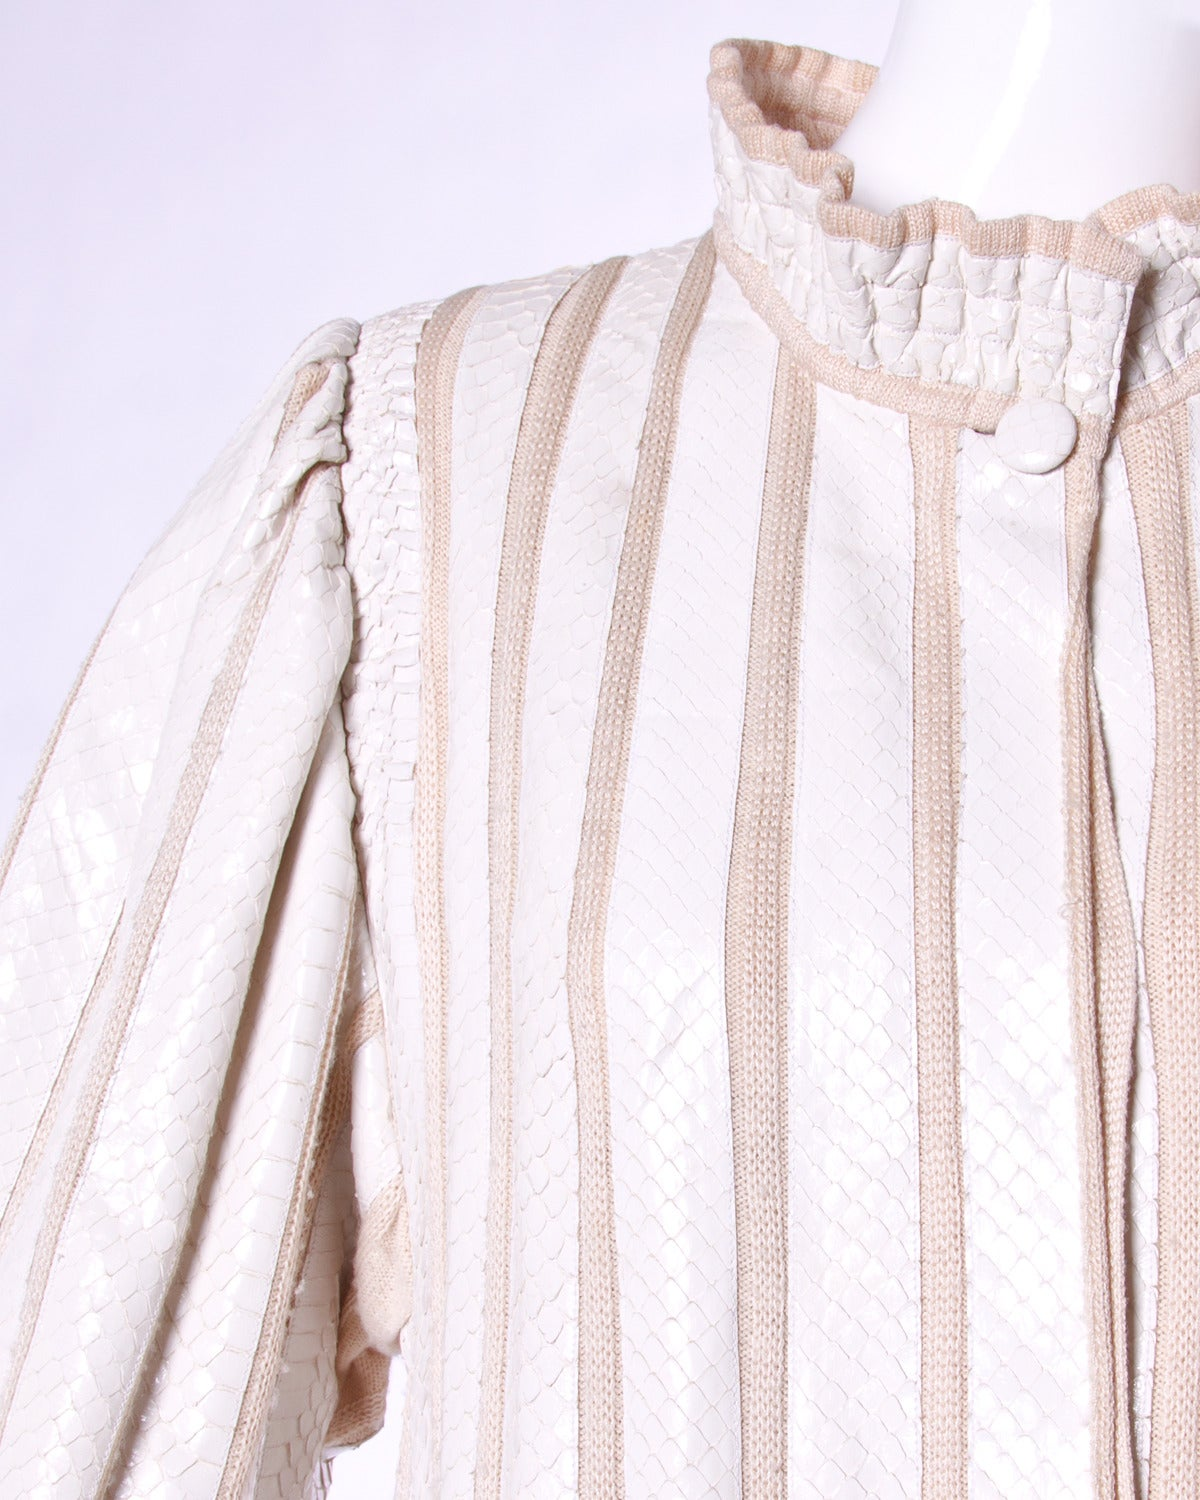 Amen Wardy Vintage 1980s 80s White Reptile Skin Wool + Silk Jacket In Excellent Condition For Sale In Sparks, NV